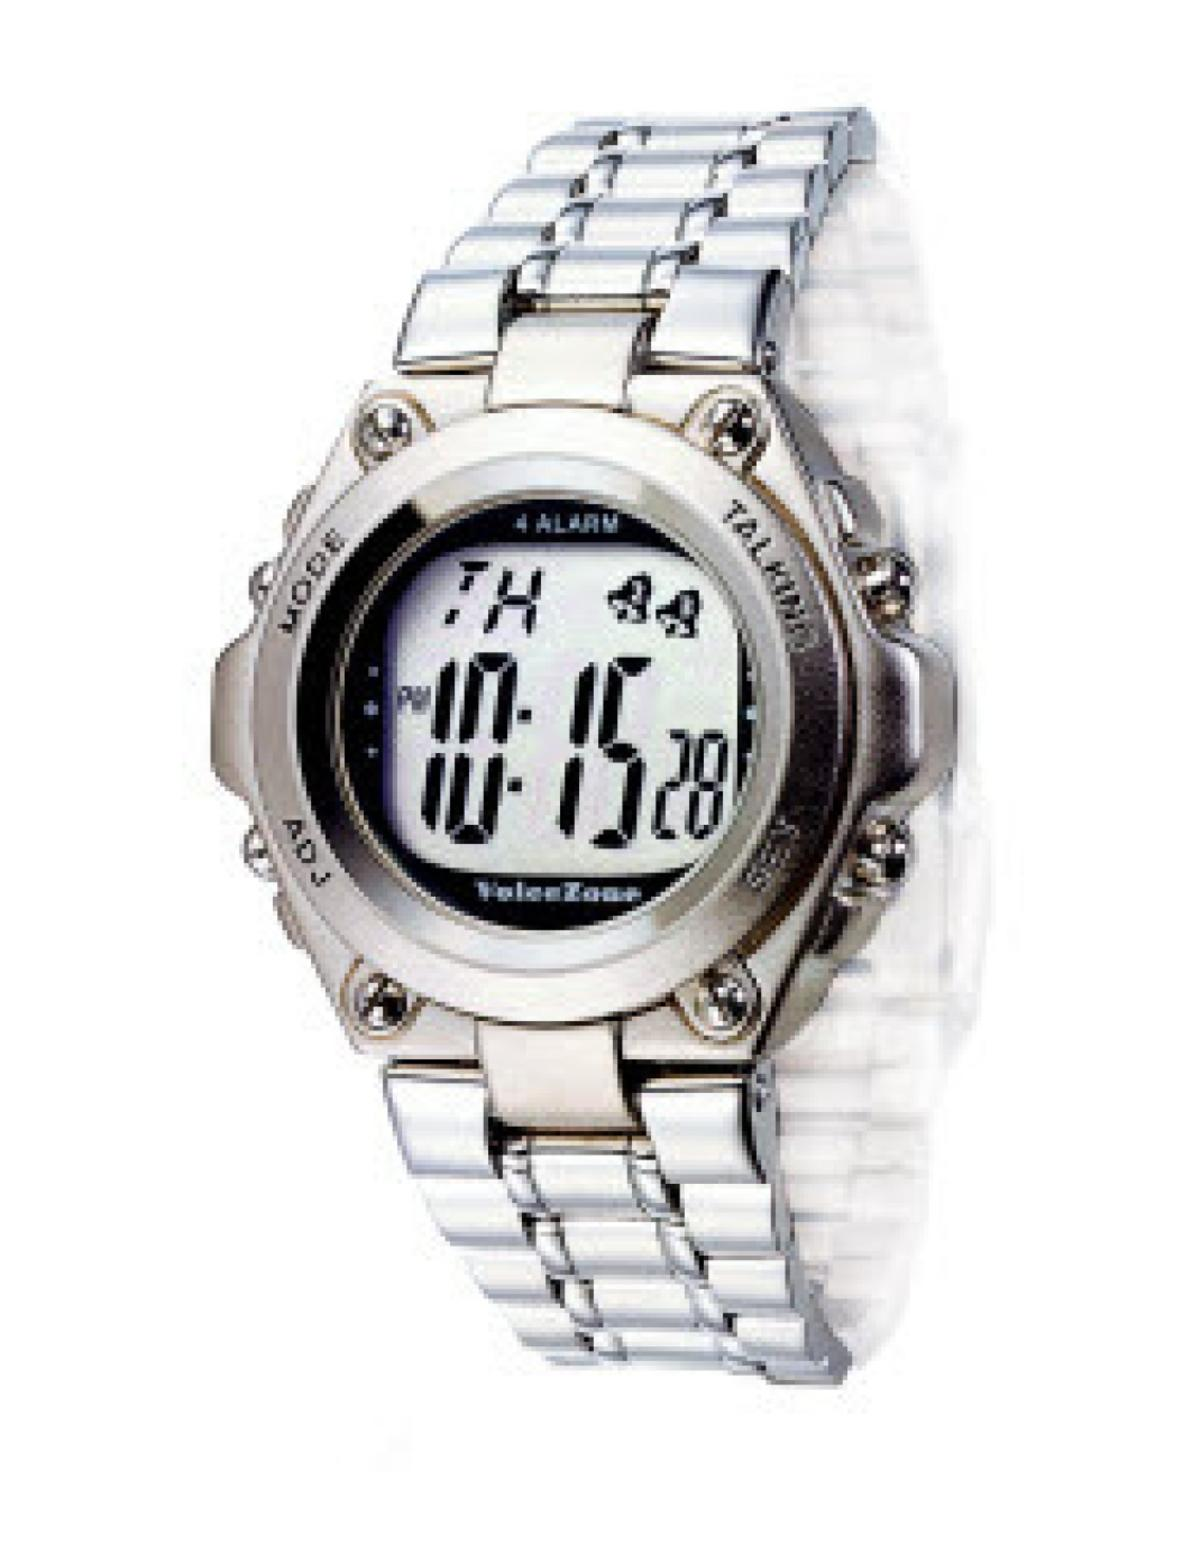 Lots Of Ovo Talking Alarm Watch Stainless Steel Links Discounted